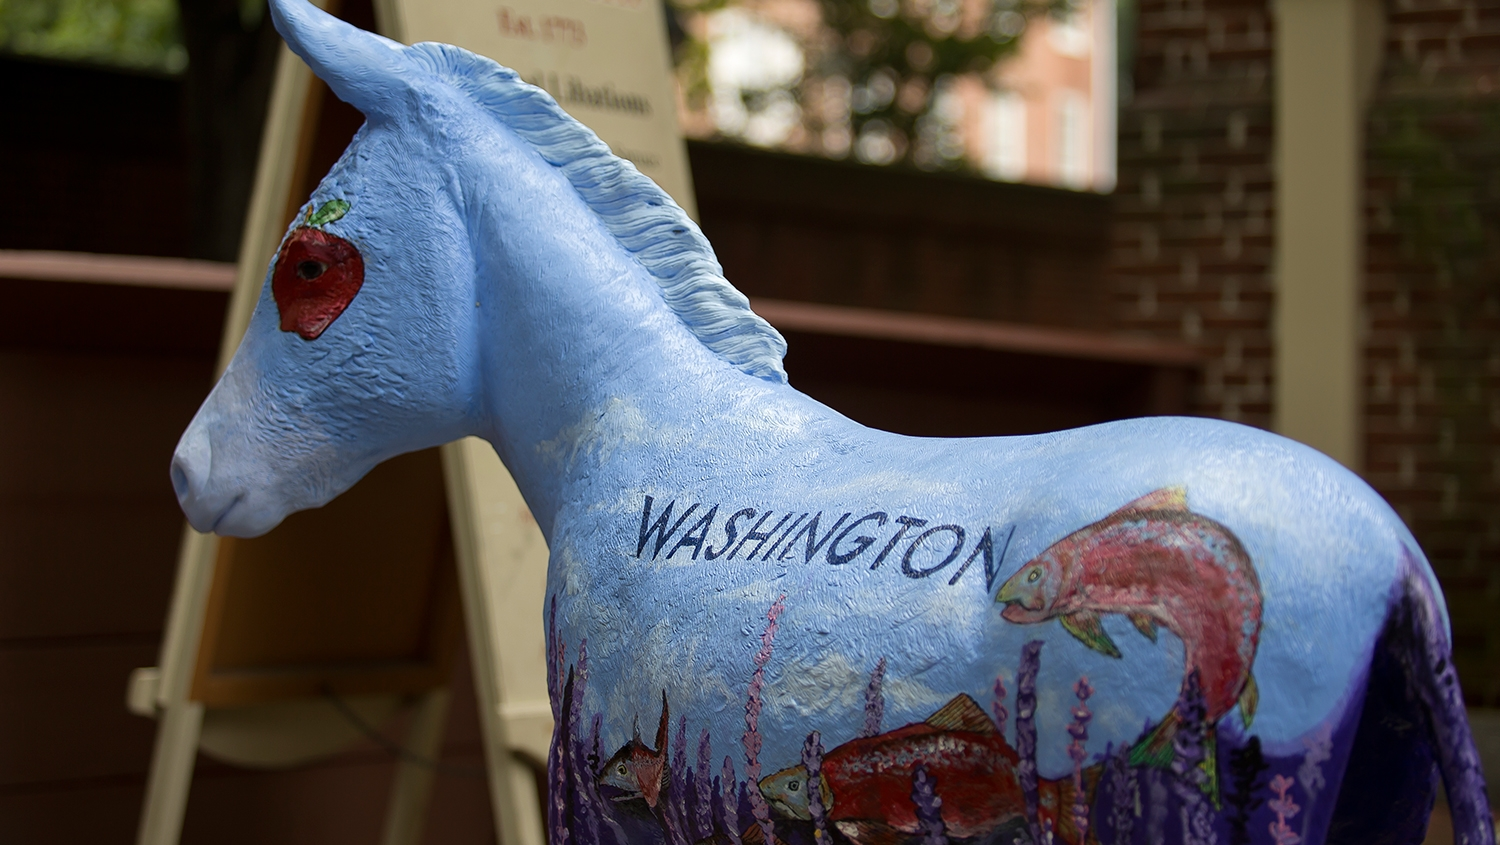 A donkey painted with visual elements representing Washington.